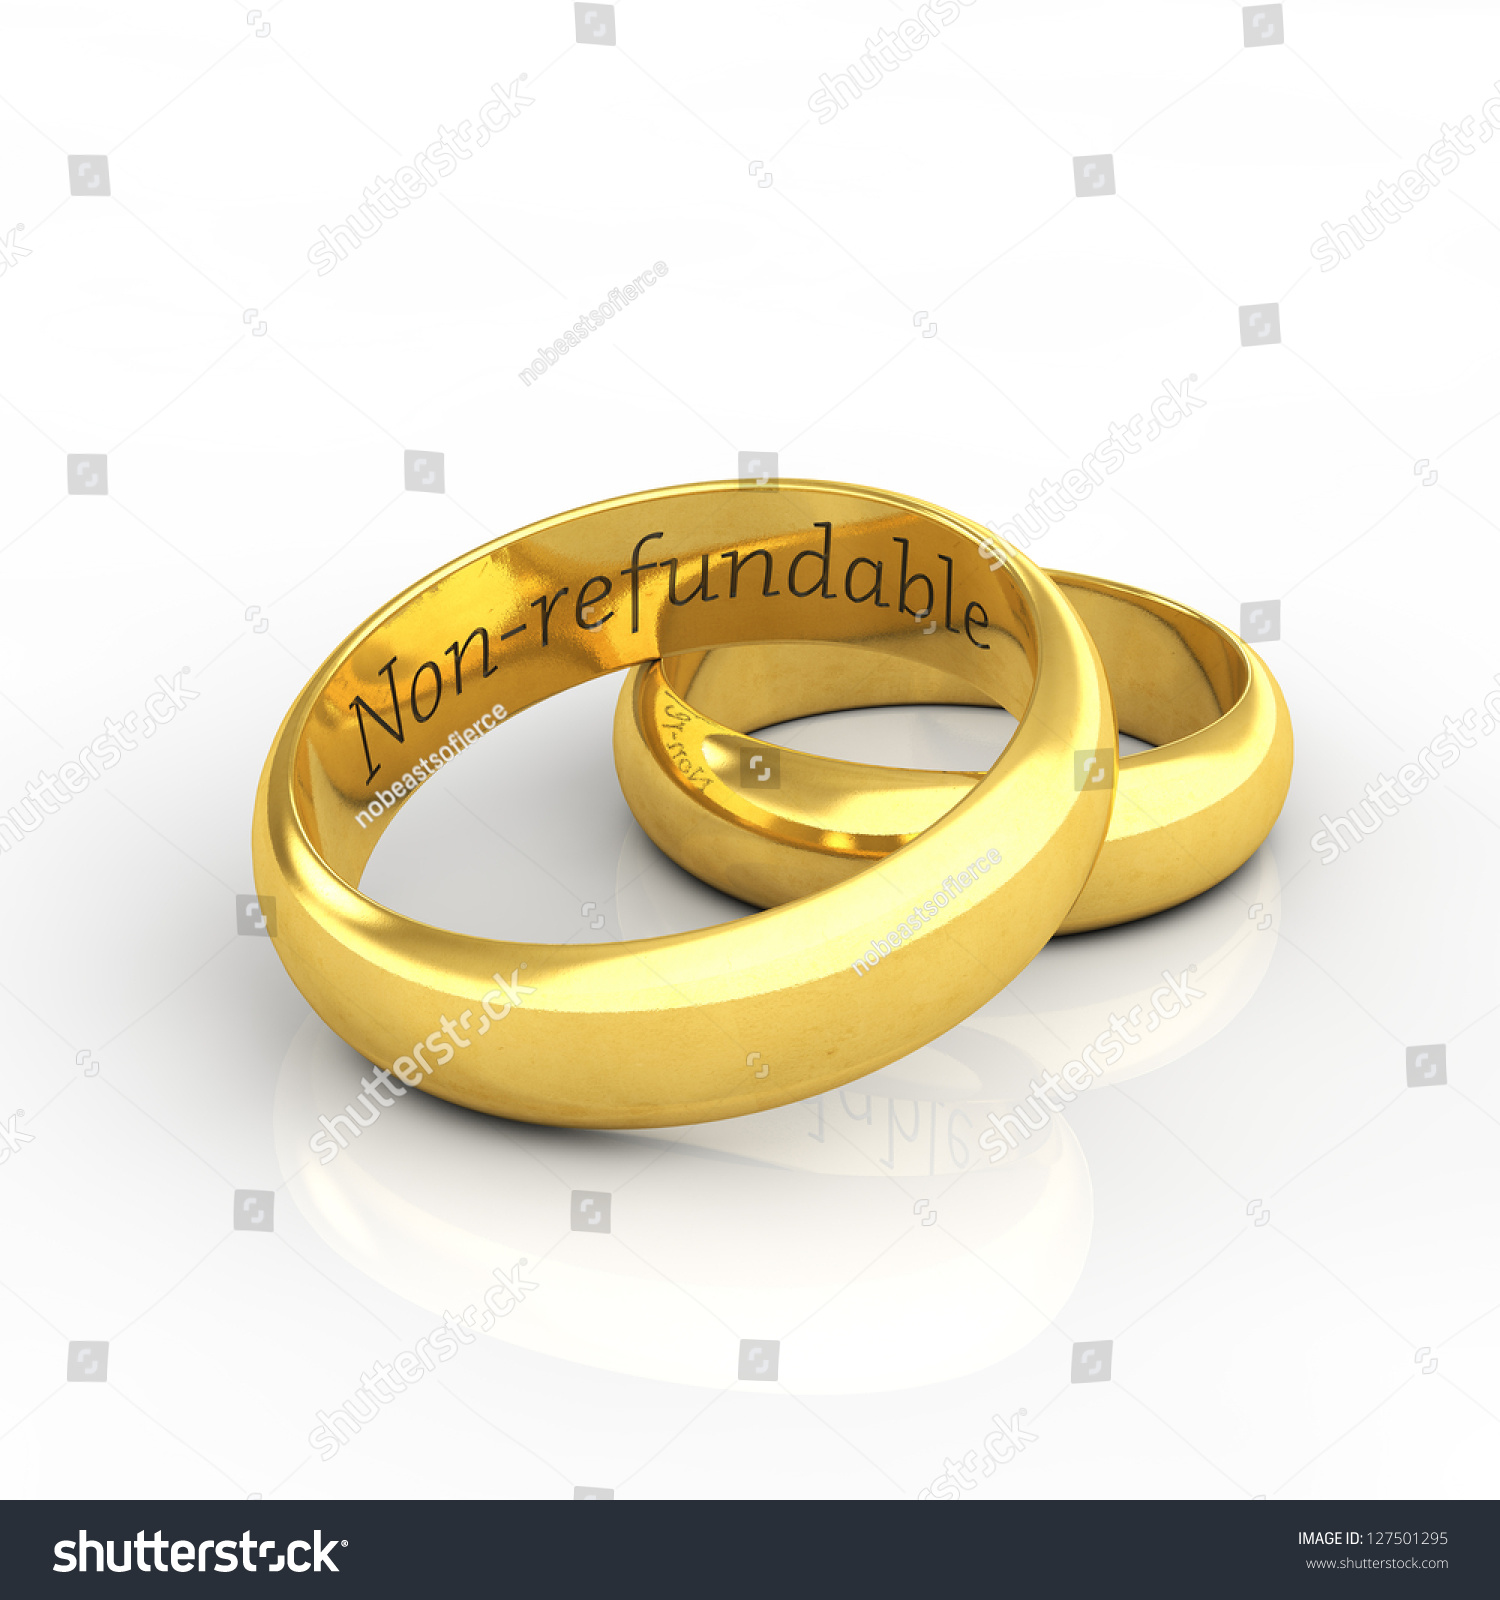 Golden Wedding Rings With Funny Engraving On White Background